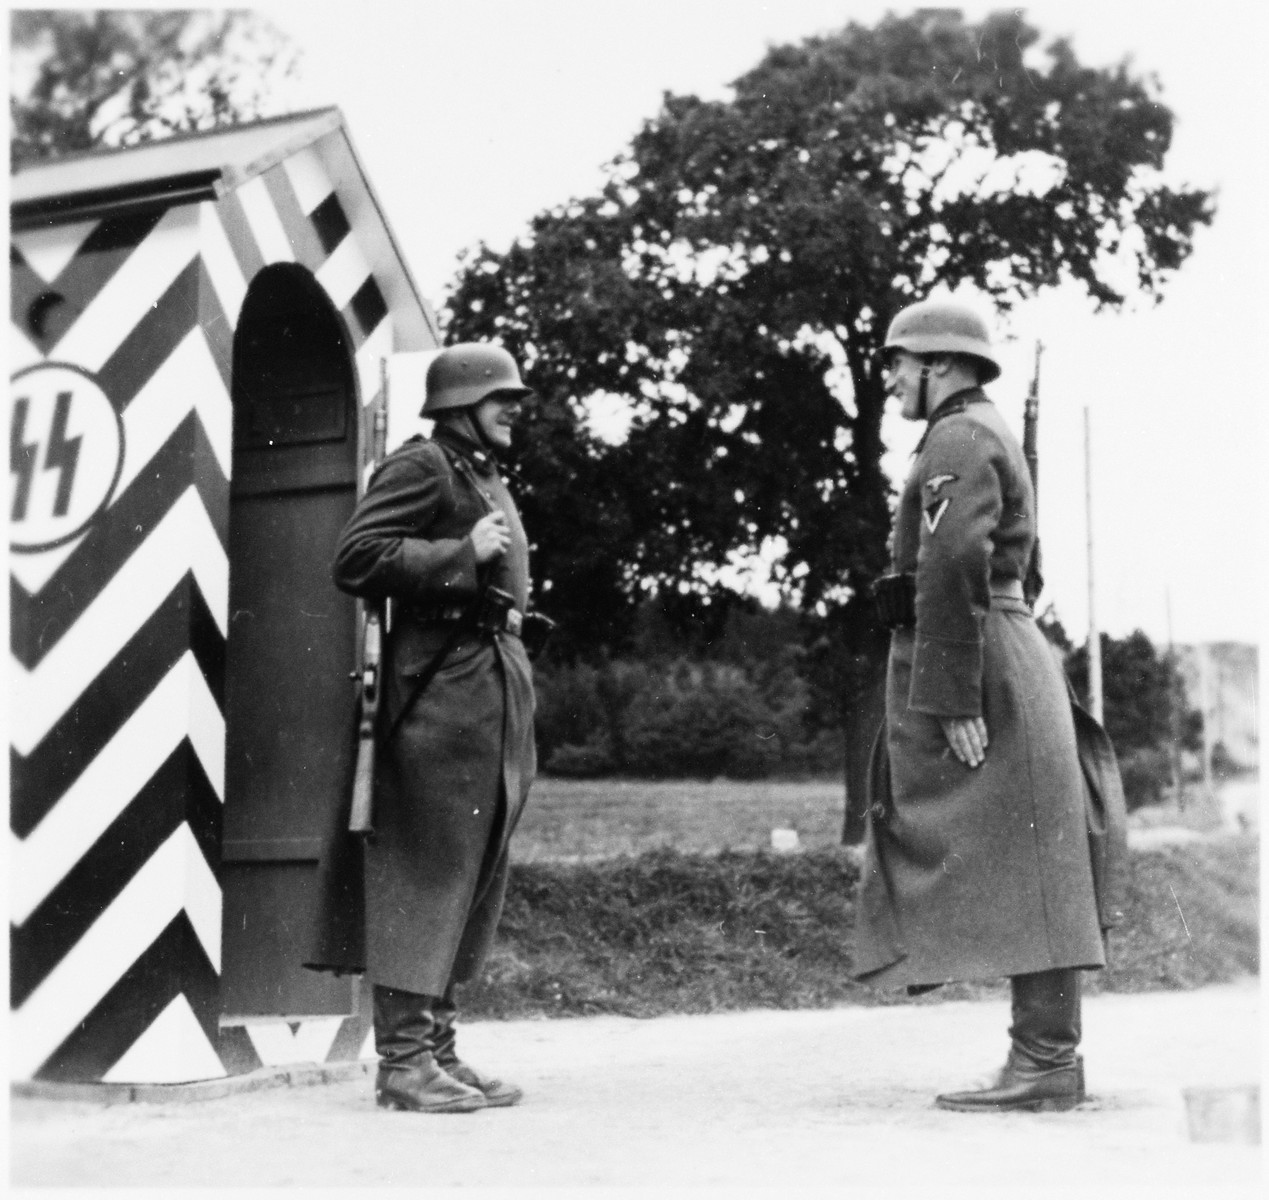 Guards stand at attention at a checkpoint at the Gross-Rosen concentration camp.